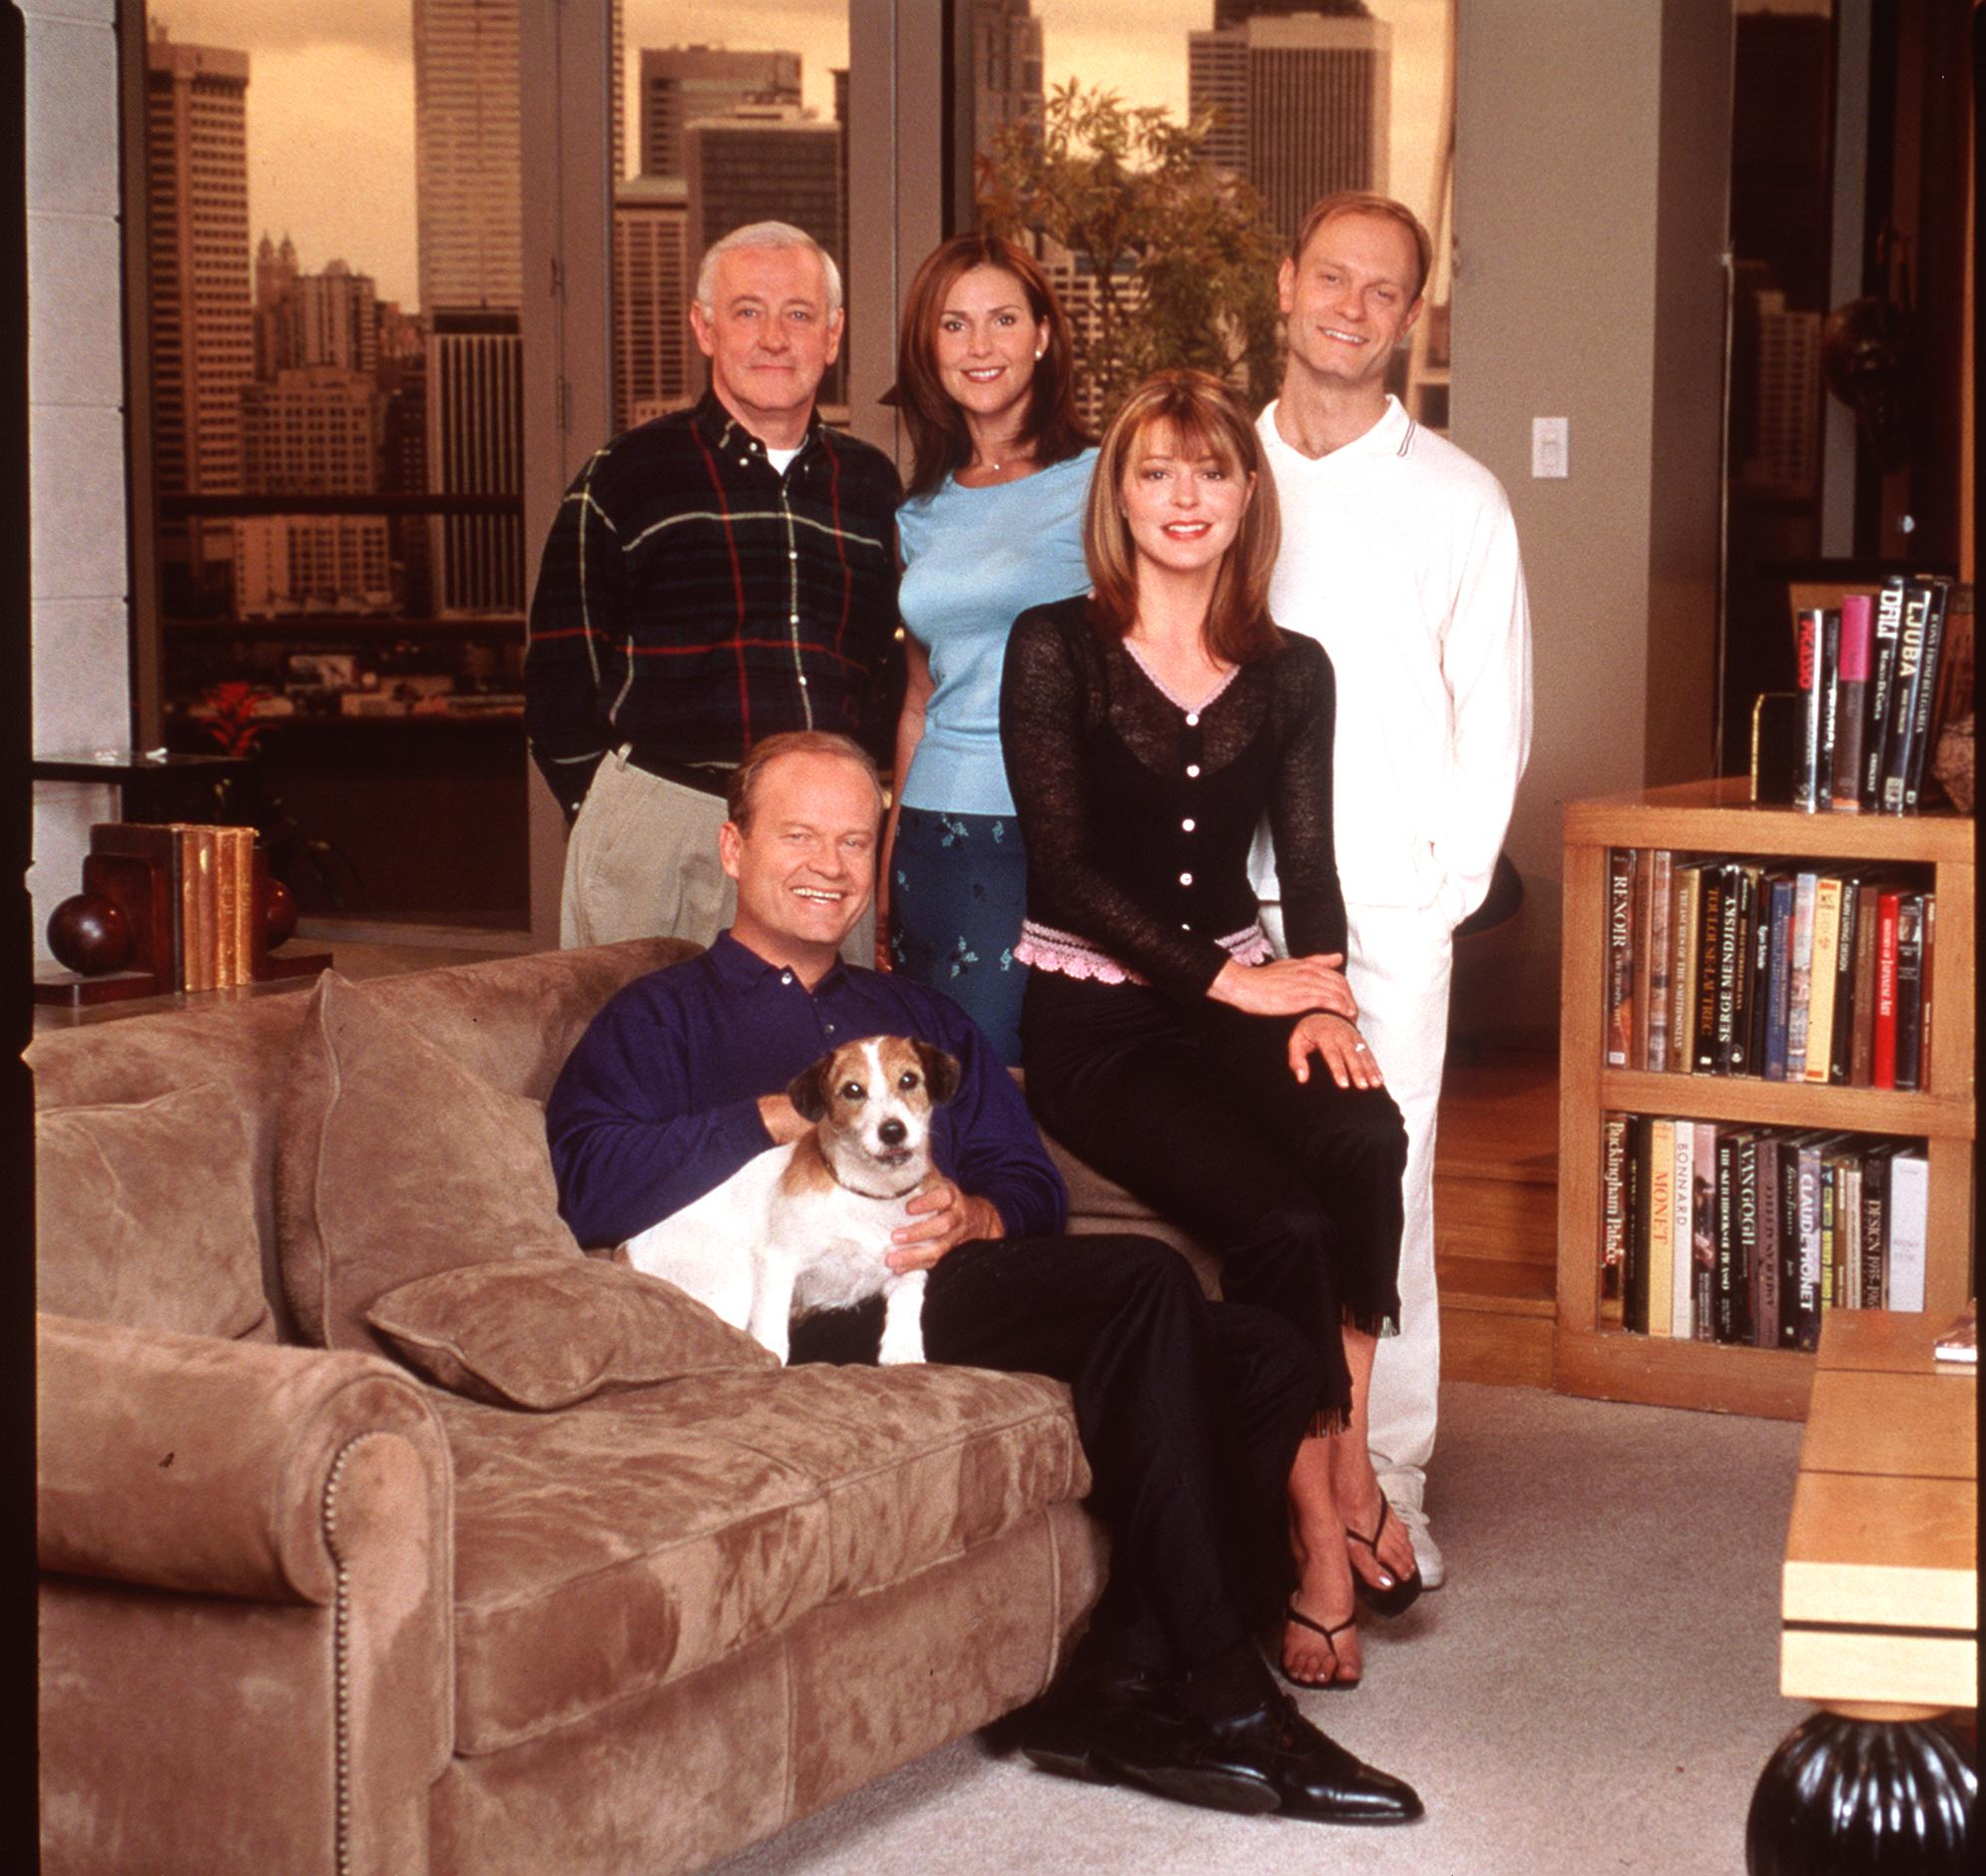 10/99 Kelsey Grammer Peri Gilpin Jane Leeves John Mahoney and David Hyde Pierce stars in the NBC series